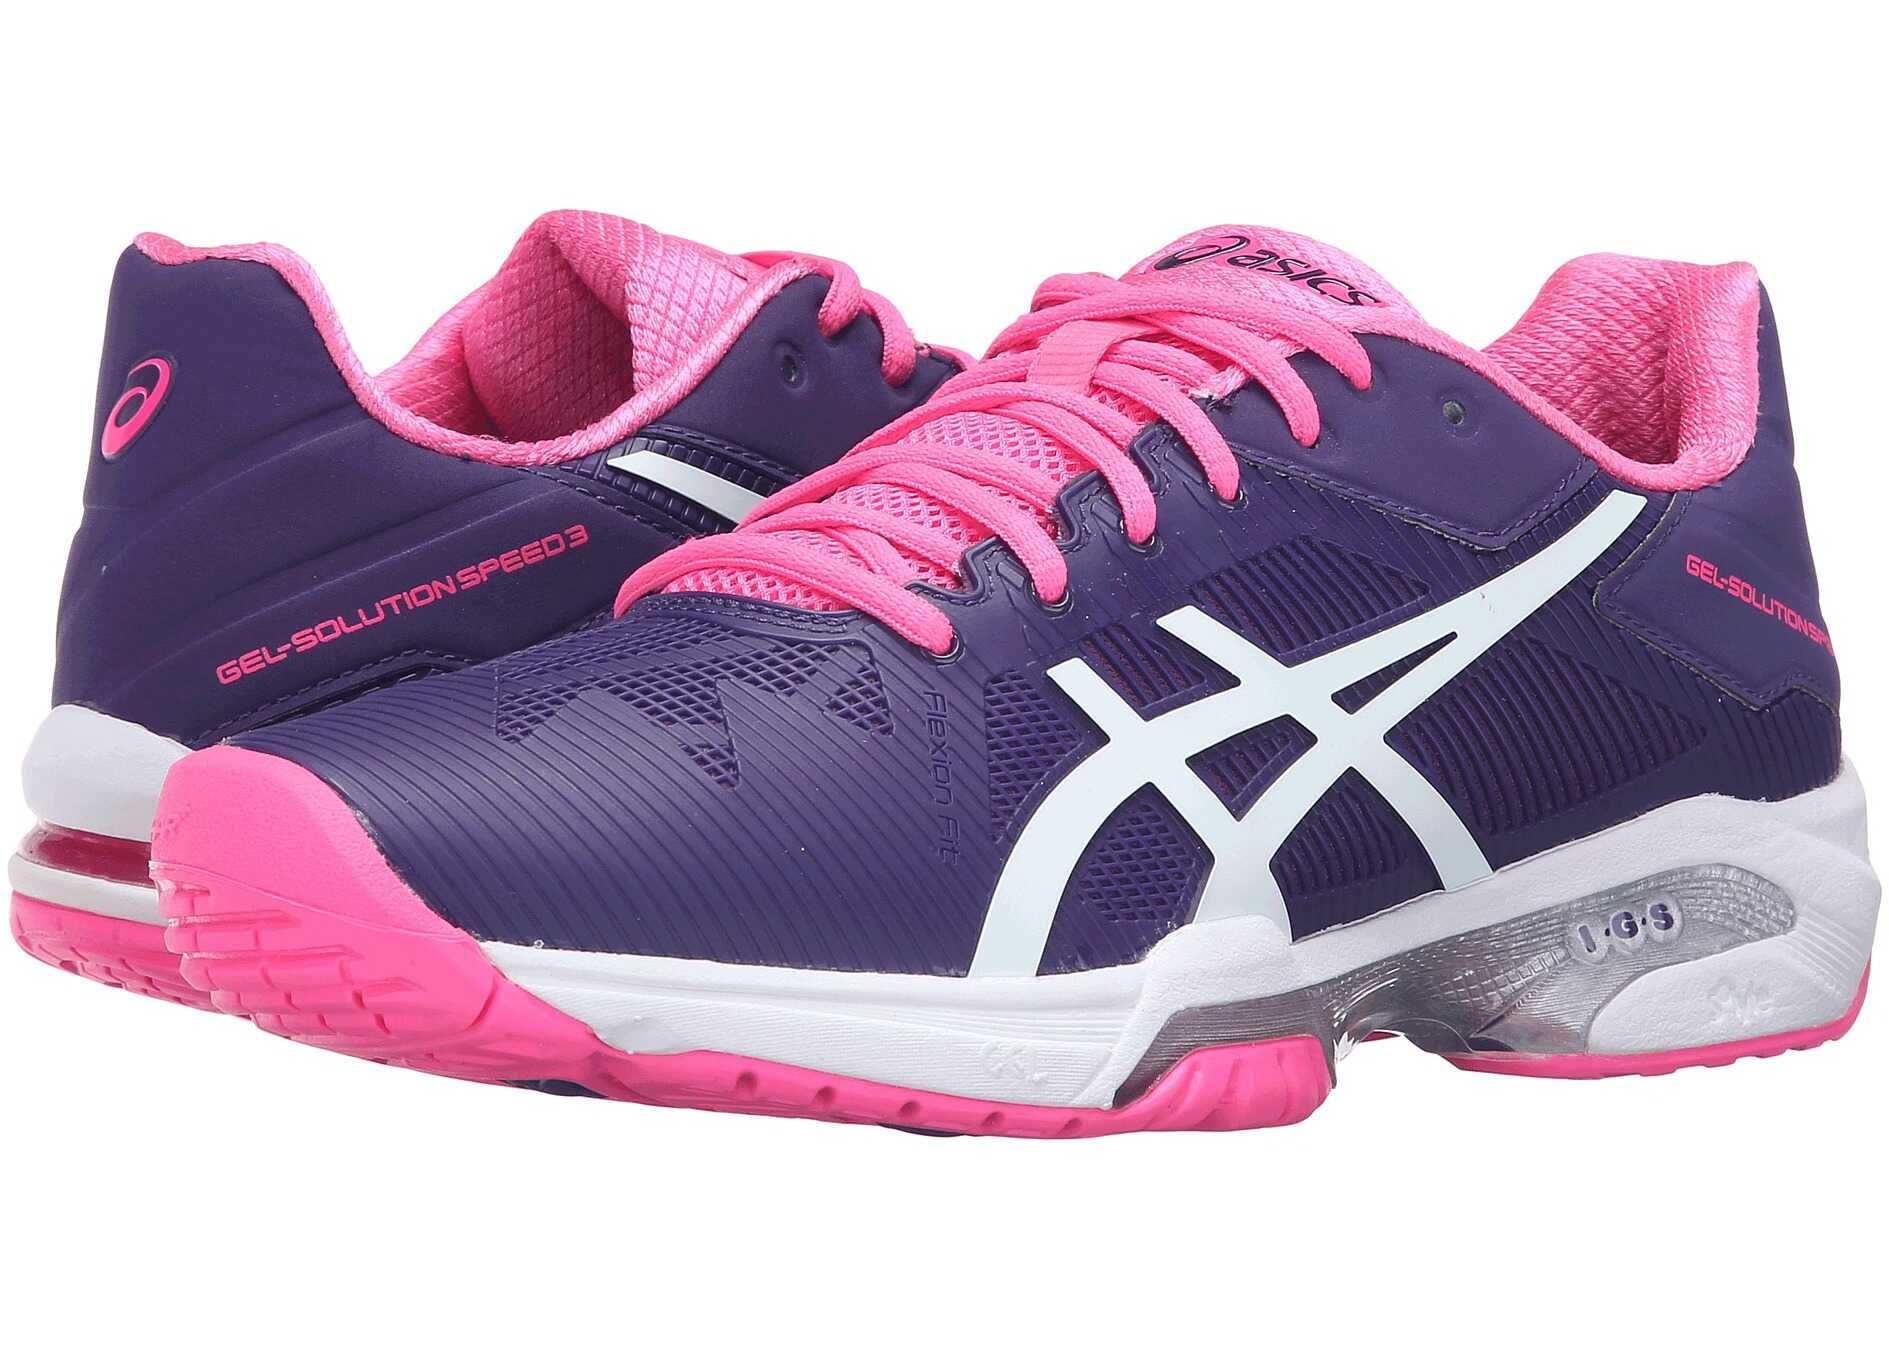 ASICS Gel-Solution® Speed 3 Parachute Purple/White/Hot Pink